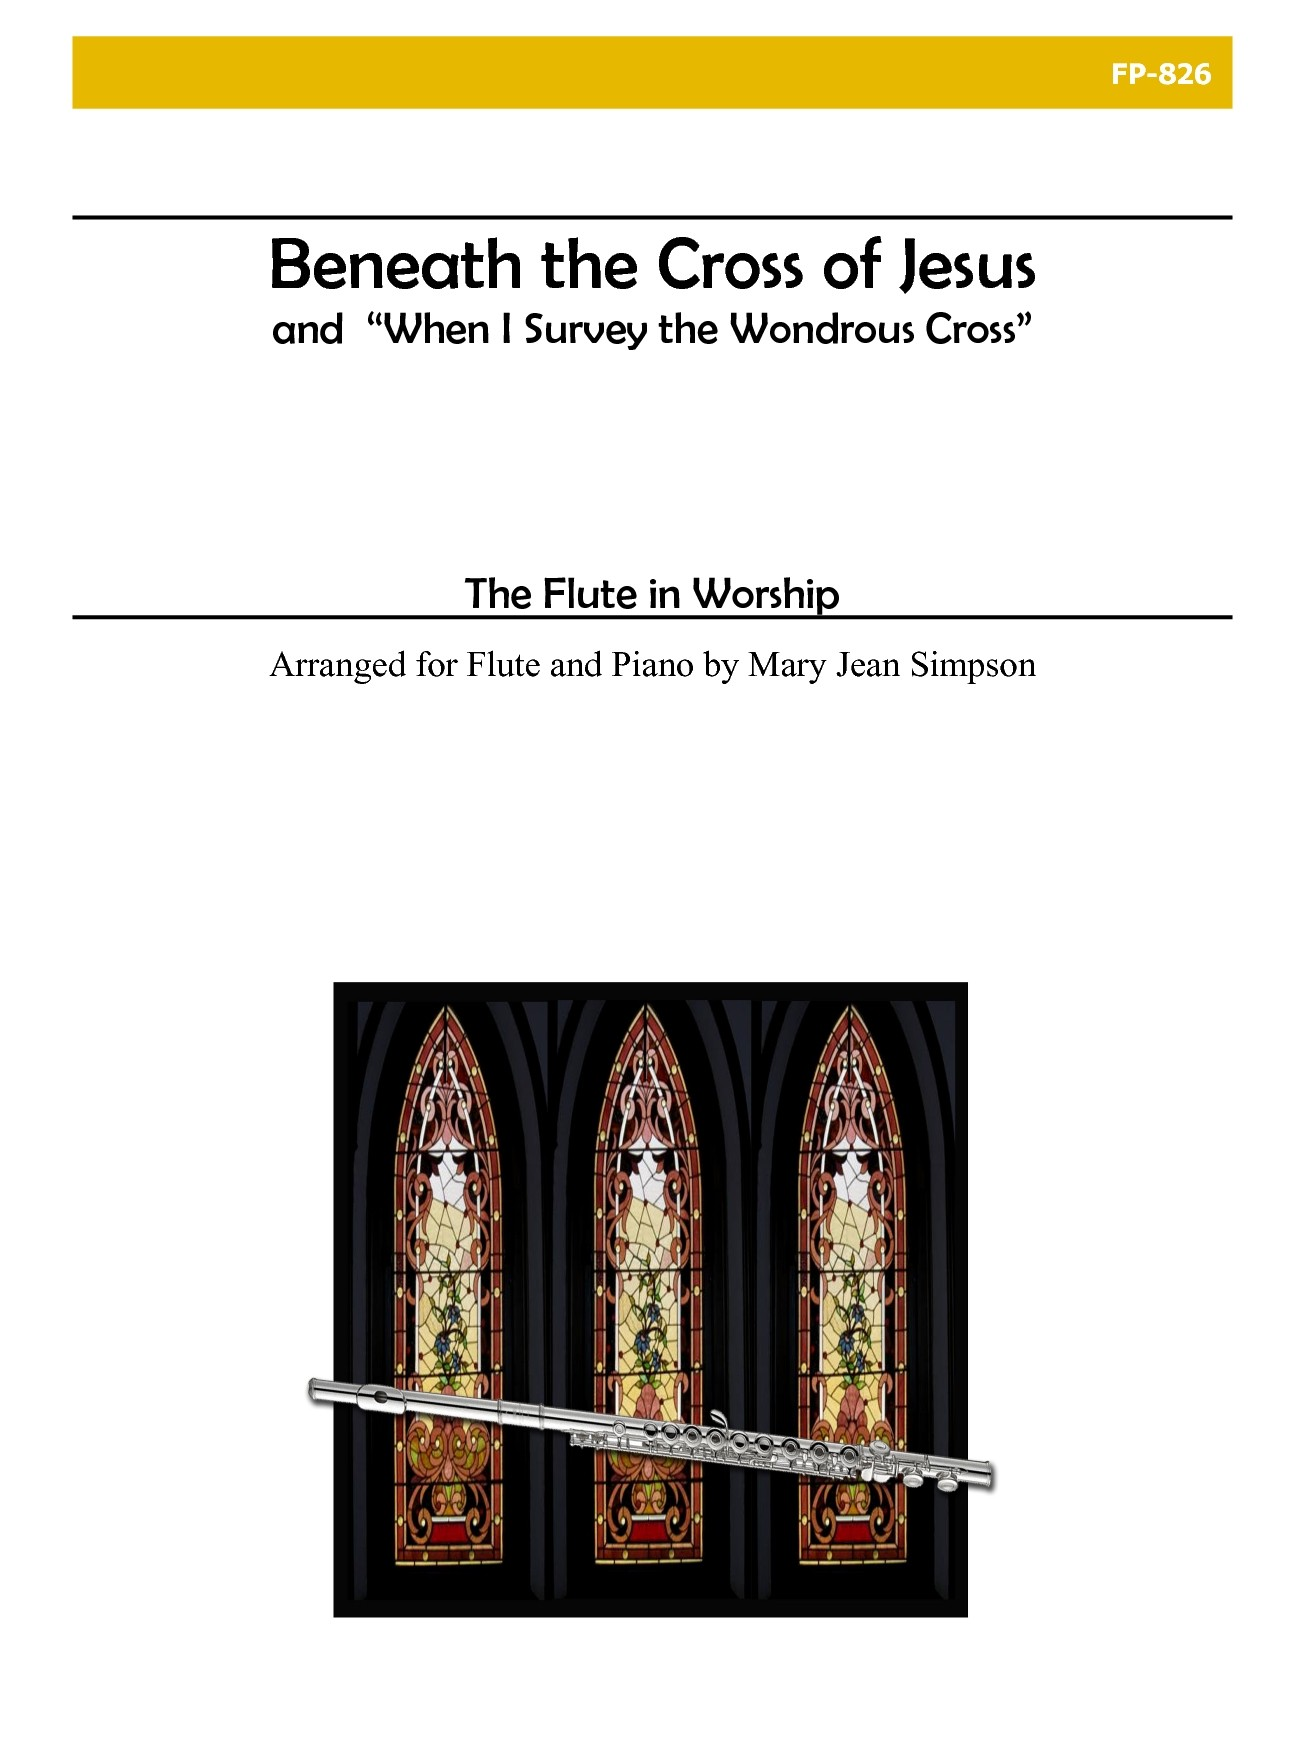 Maker, FC; Mason, L :: Beaneath the Cross of Jesus | When I Survey the Wondrous Cross